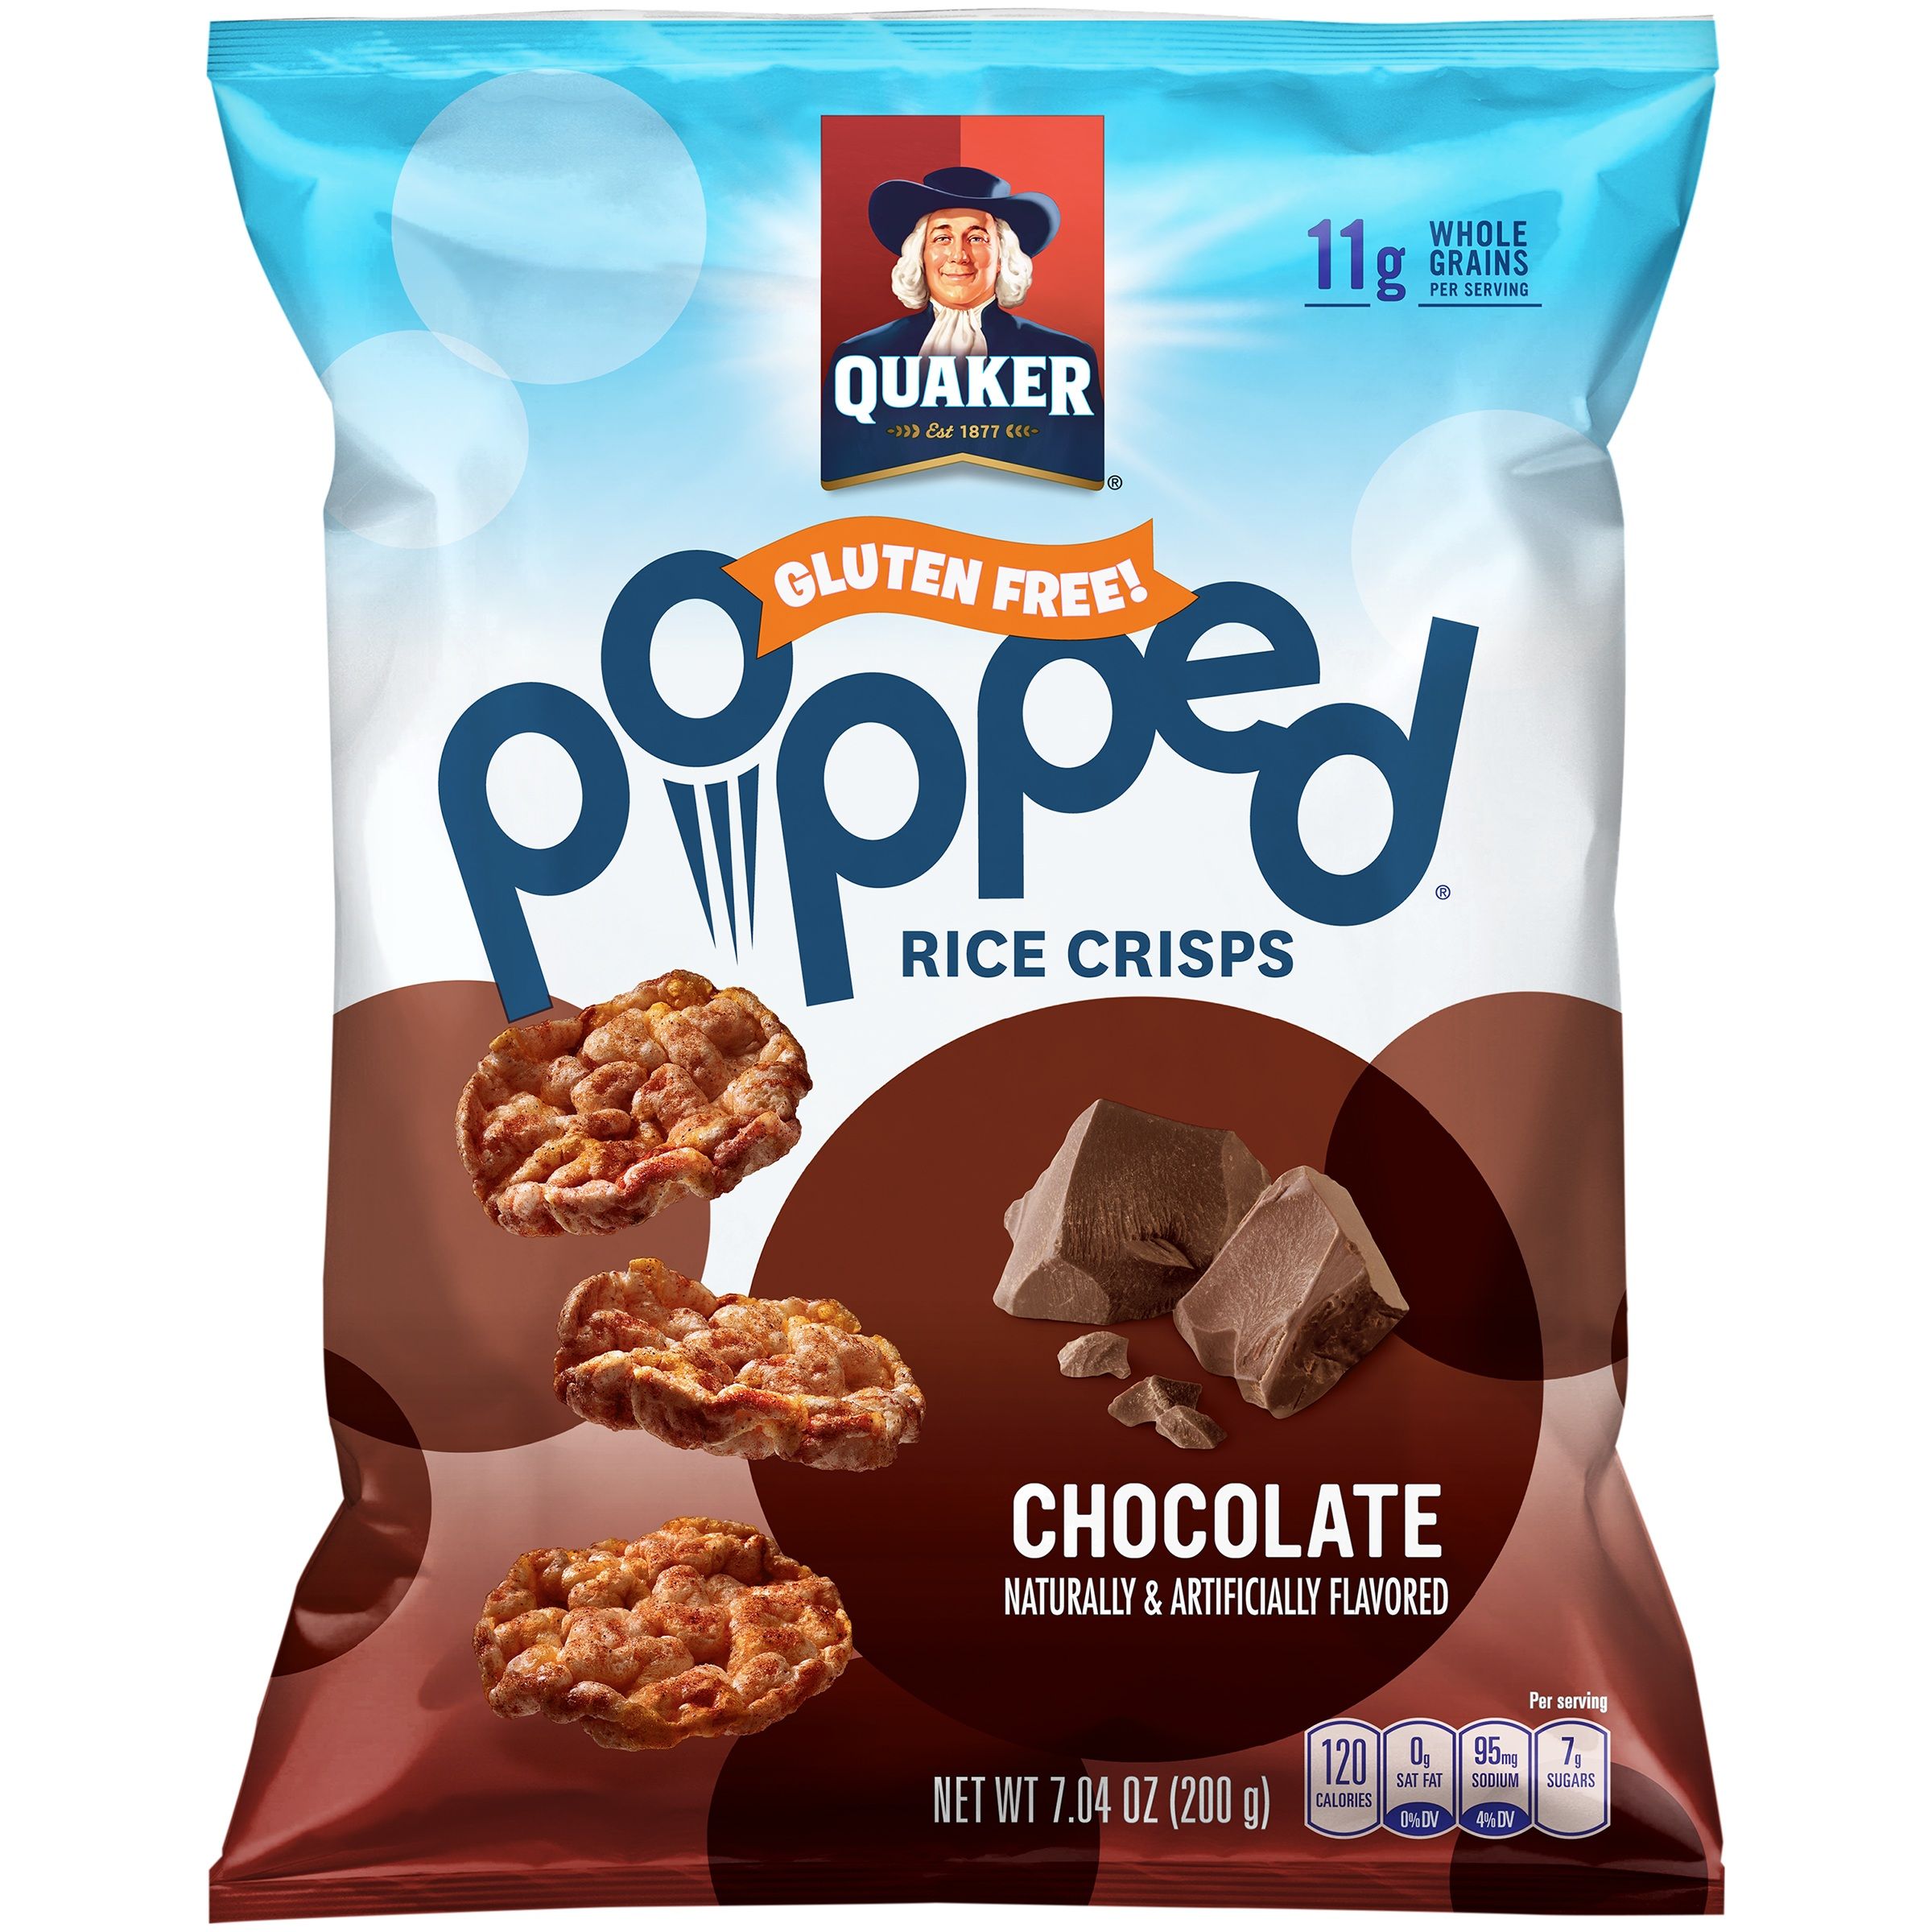 Quaker Caramel Chocolate Chip Rice Cakes Nutrition